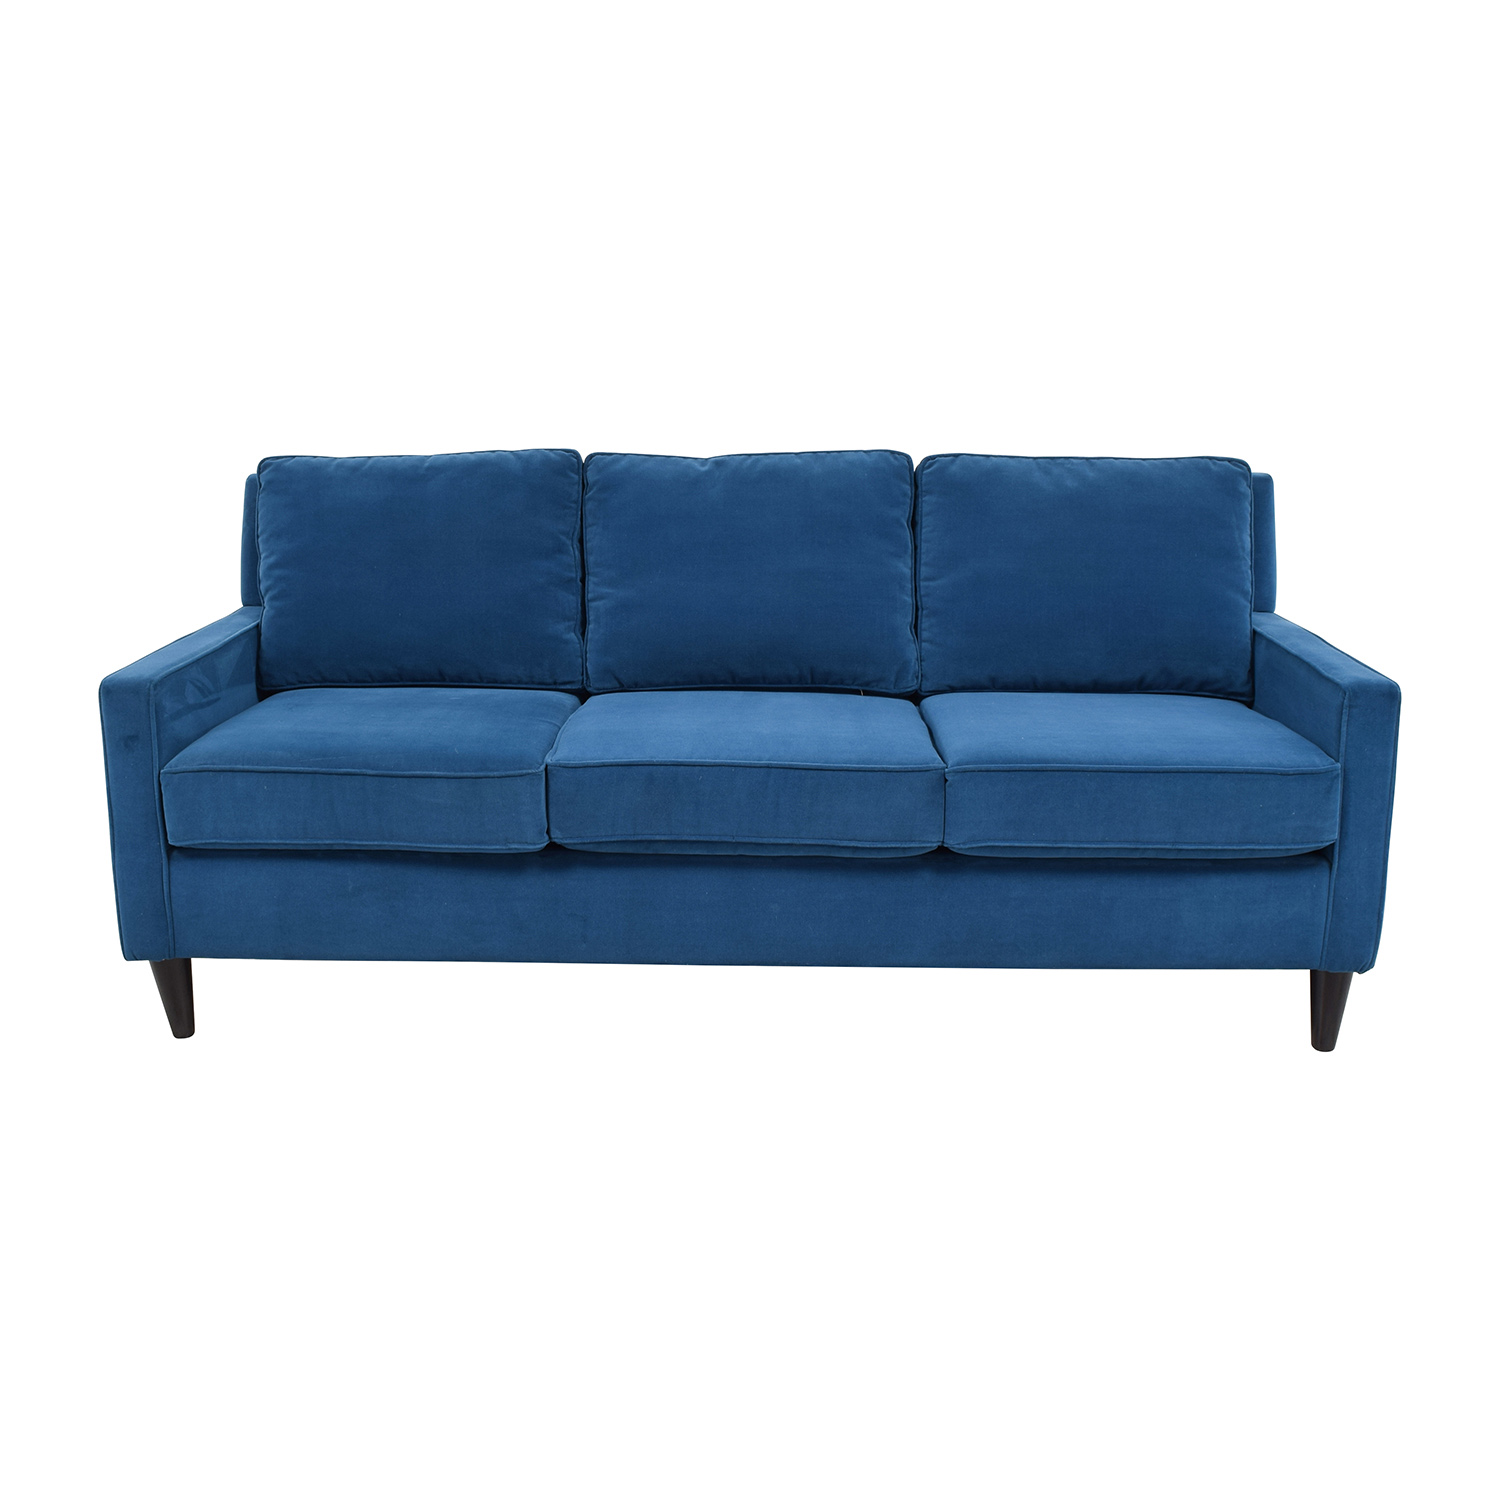 28 Off Brentwood Classics Brentwood Classics Jimmy Sofa In Admiral Sofas